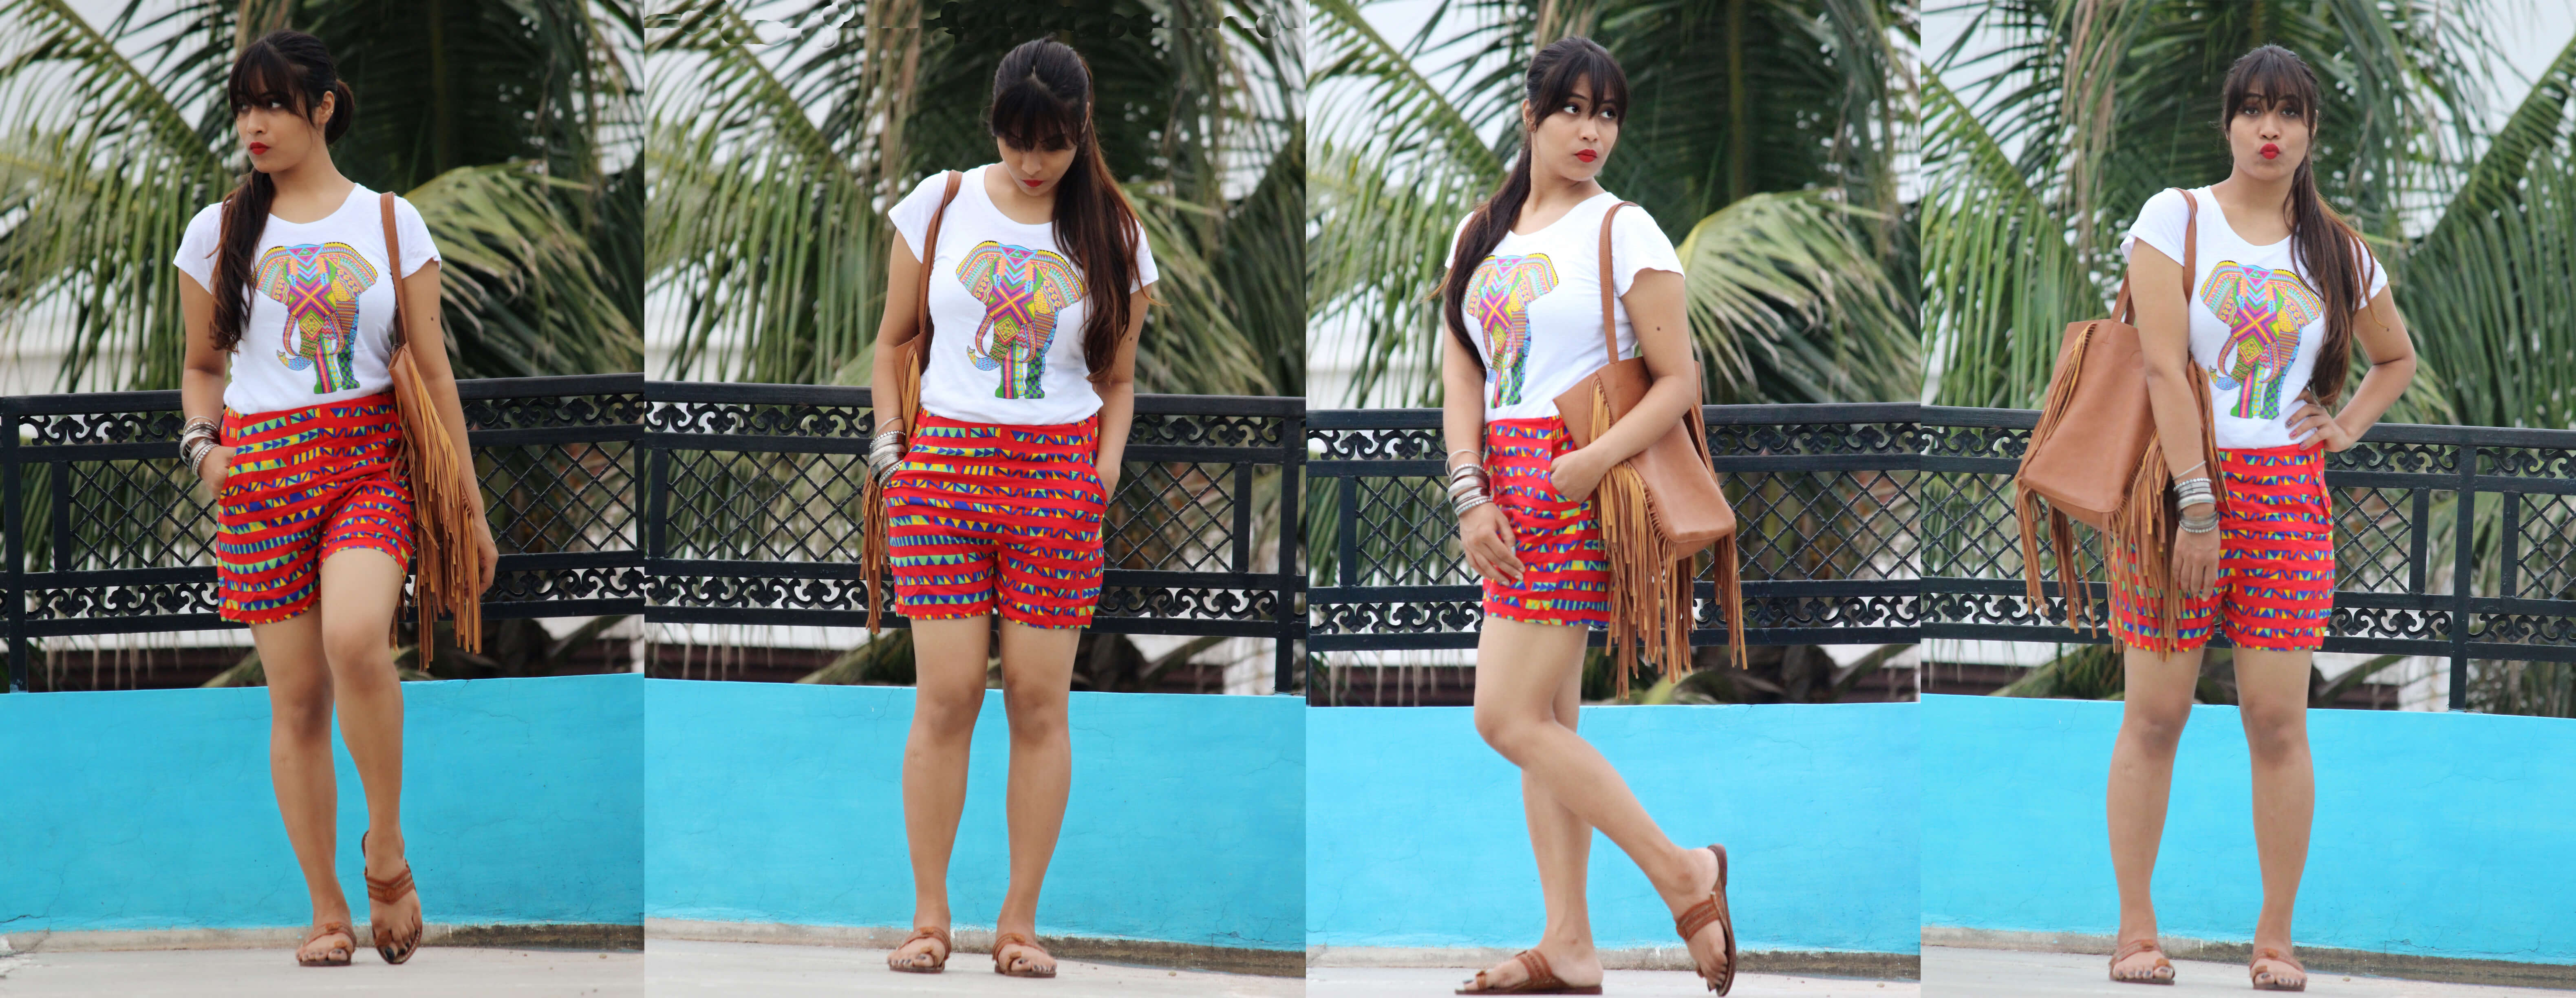 Ethnic Street Look-Styling Ethnicity With TEE & Shorts in Modern Way-The Shorts Series